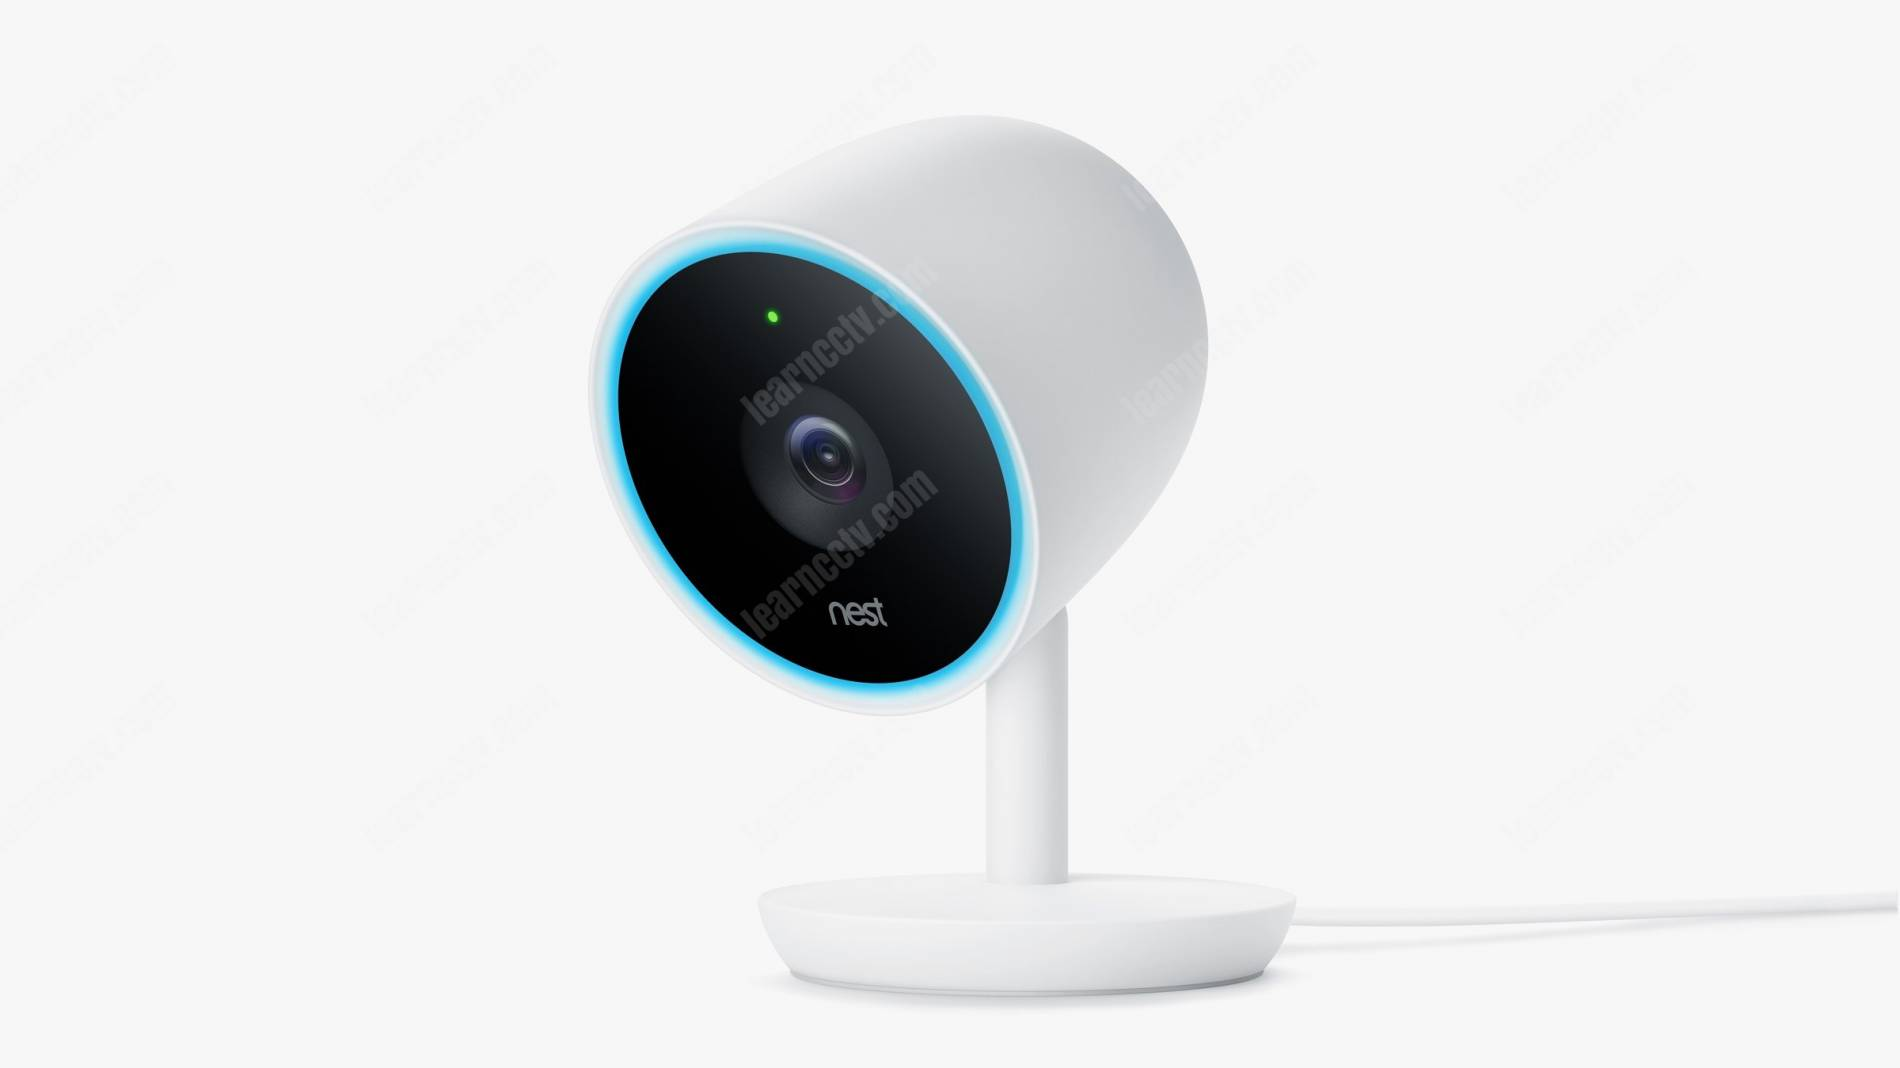 IP camera with face recognition (Nest Cam IQ) - Learn CCTV com